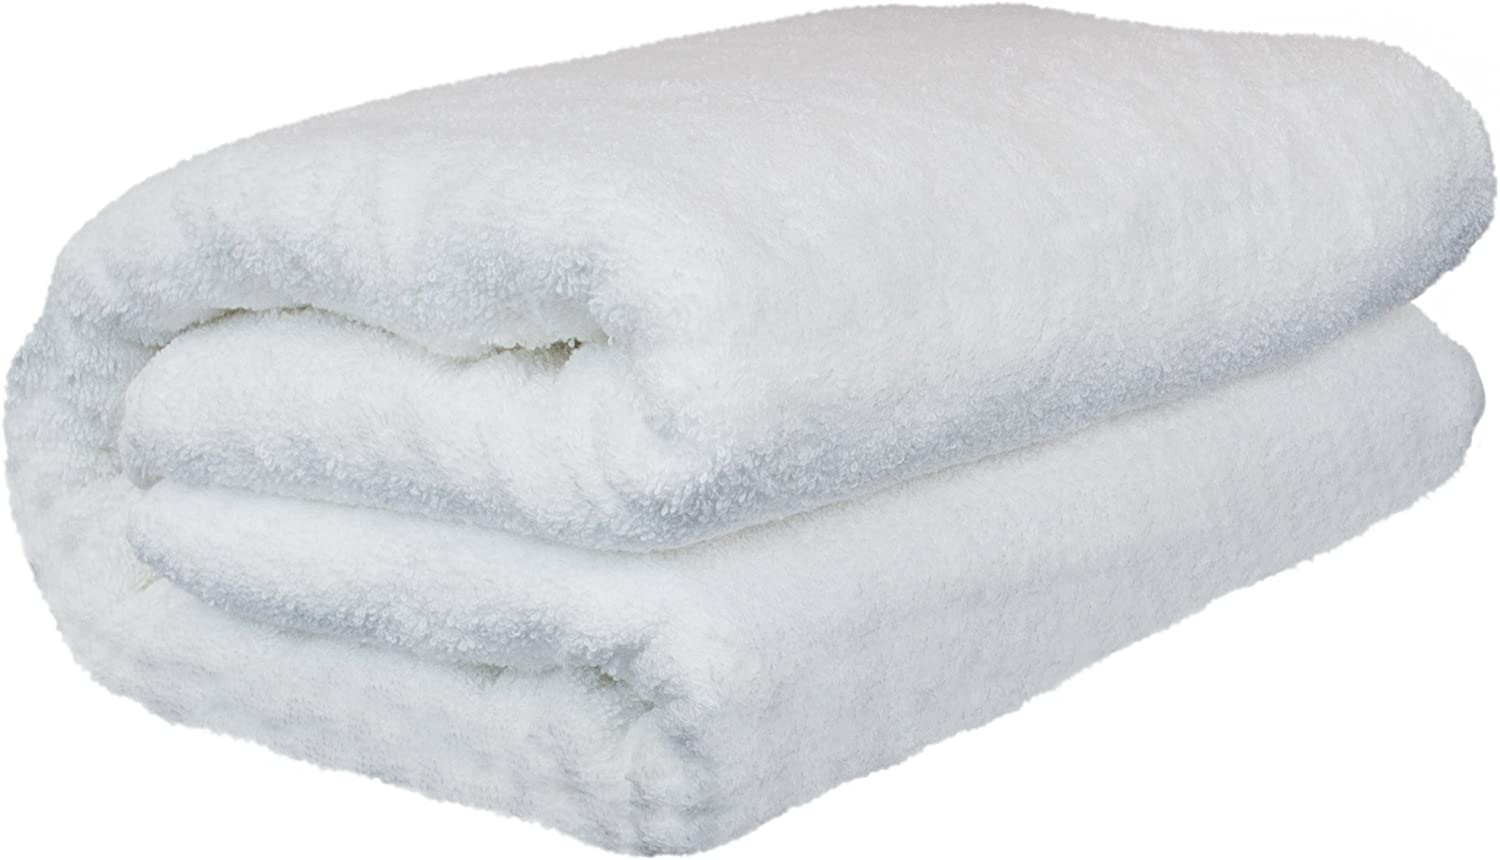 BC BARE COTTON Luxury Hotel & Spa Towel Turkish Cotton Oversized Bath Sheets - White - (40x80 inches, Set of 1): Home & Kitchen